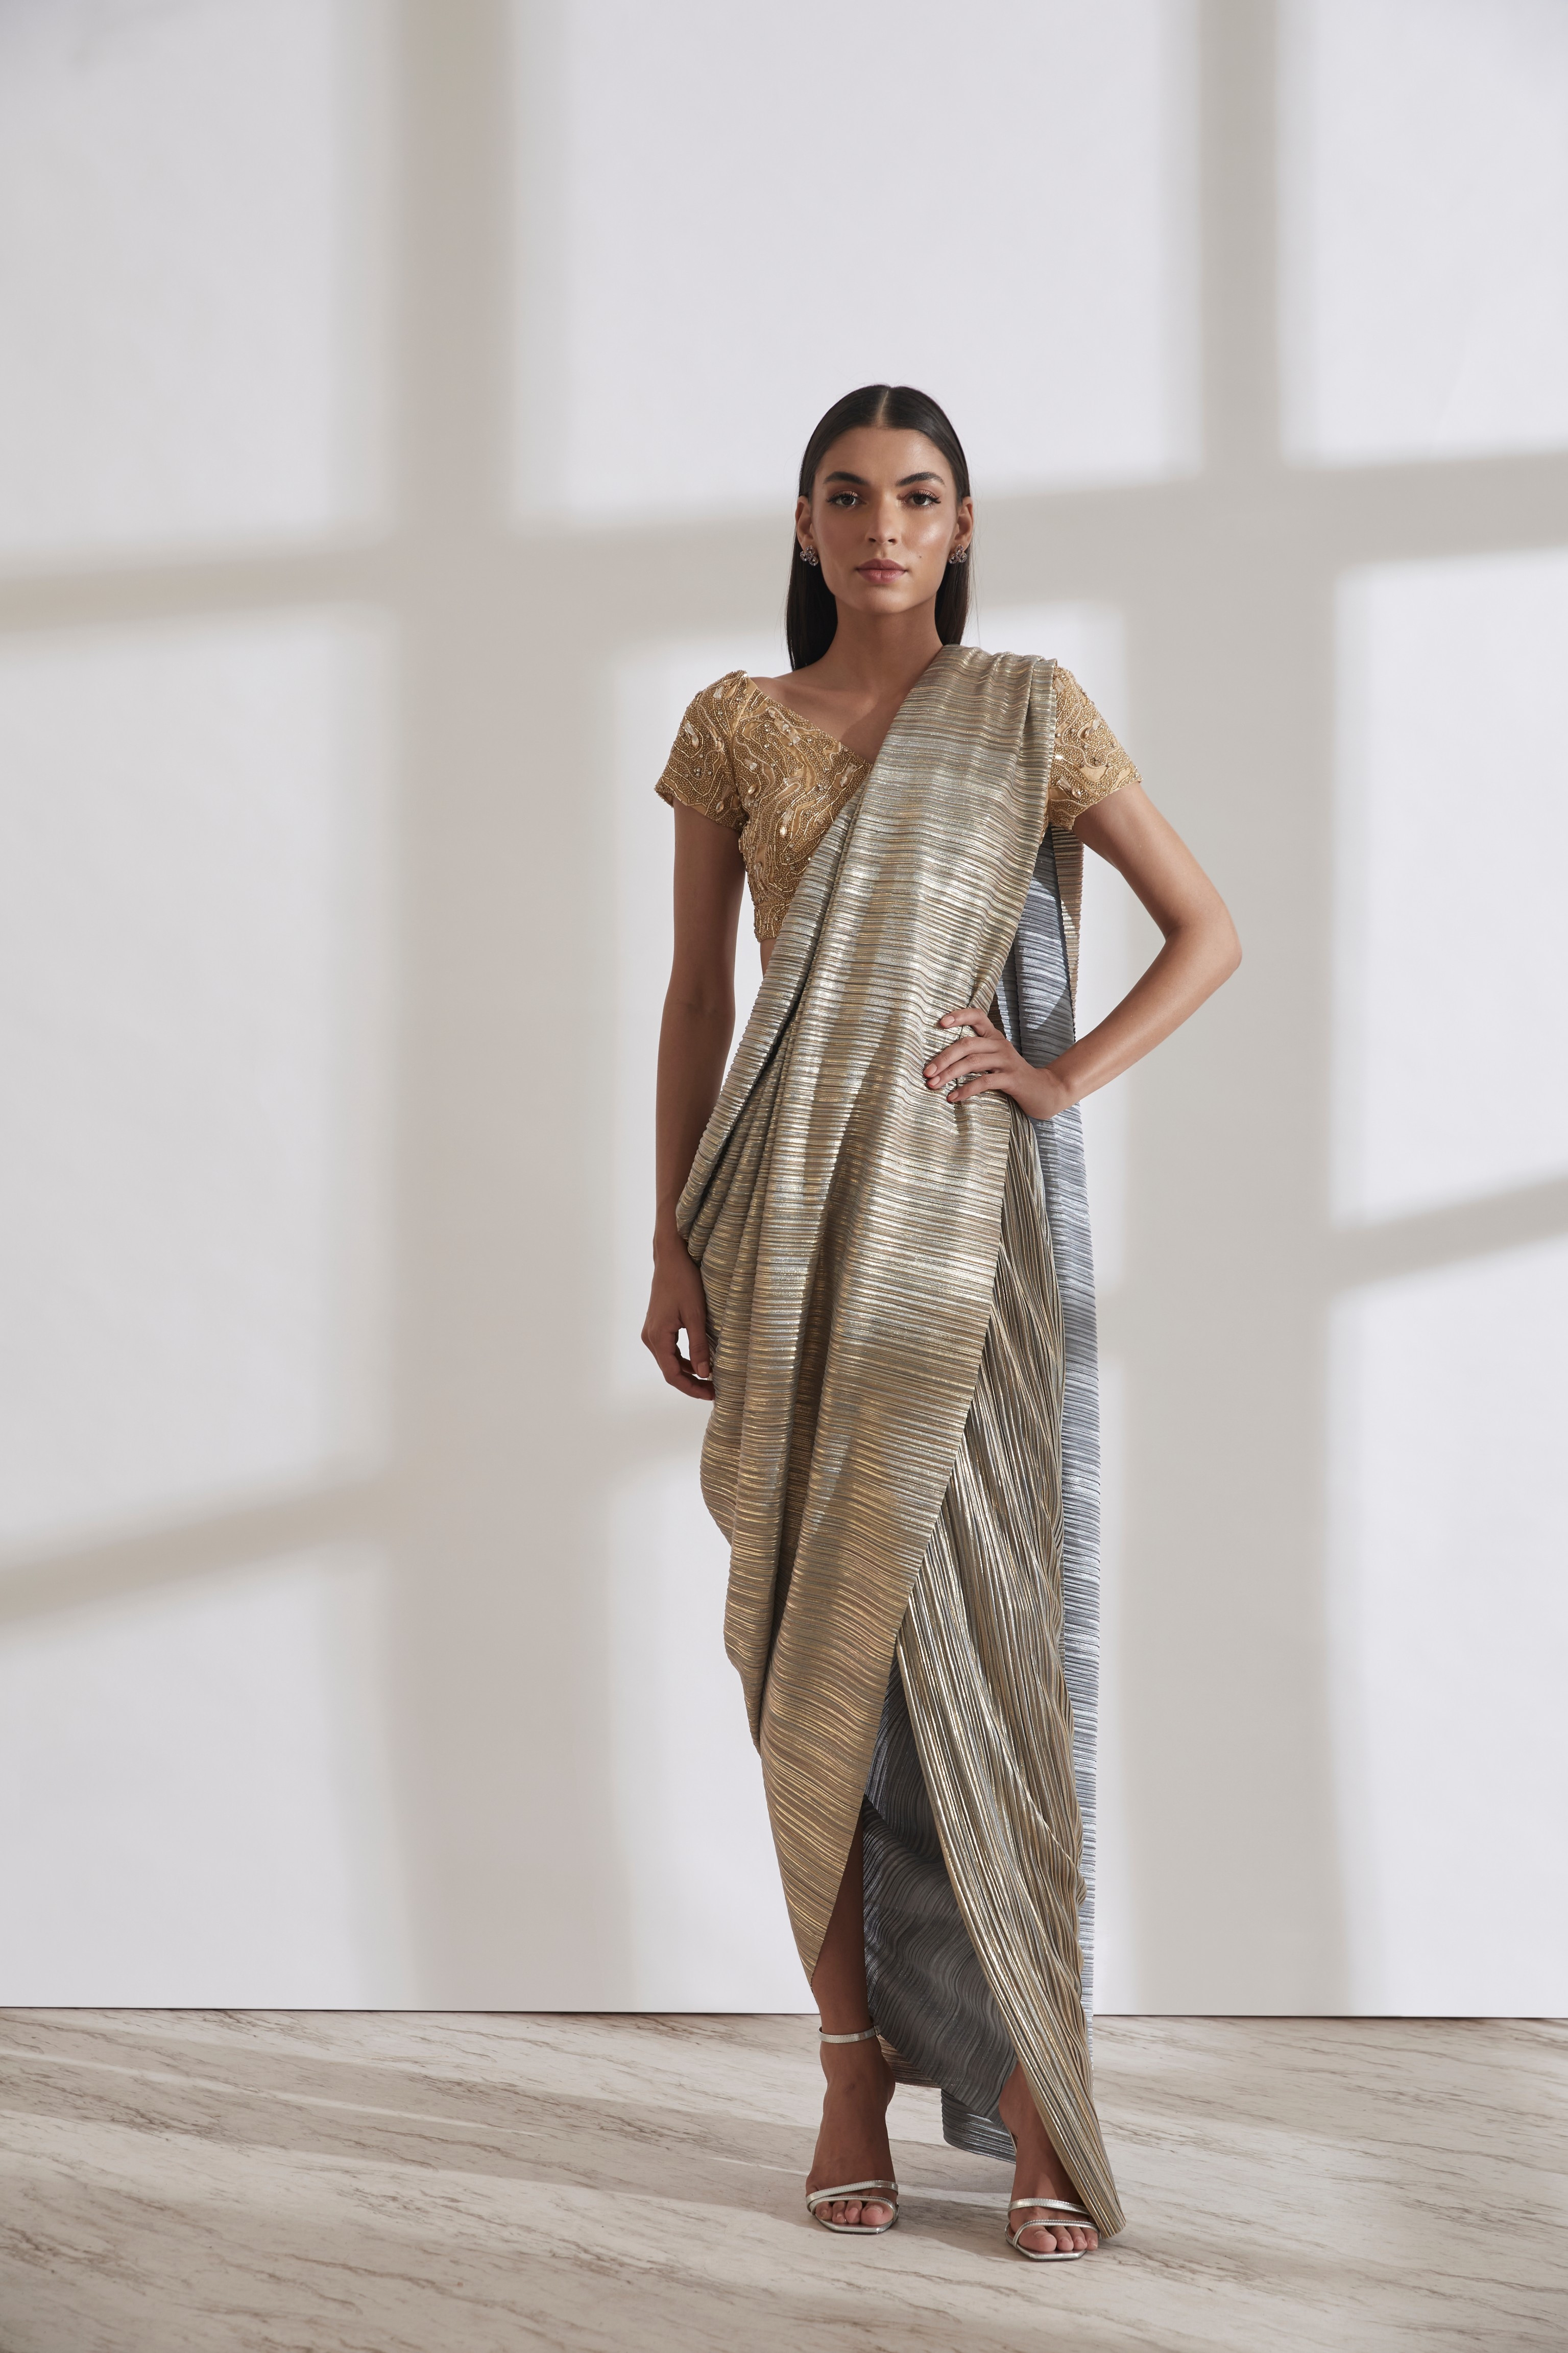 Metallic 2.0 Sari with River Flow Nikki Blouse